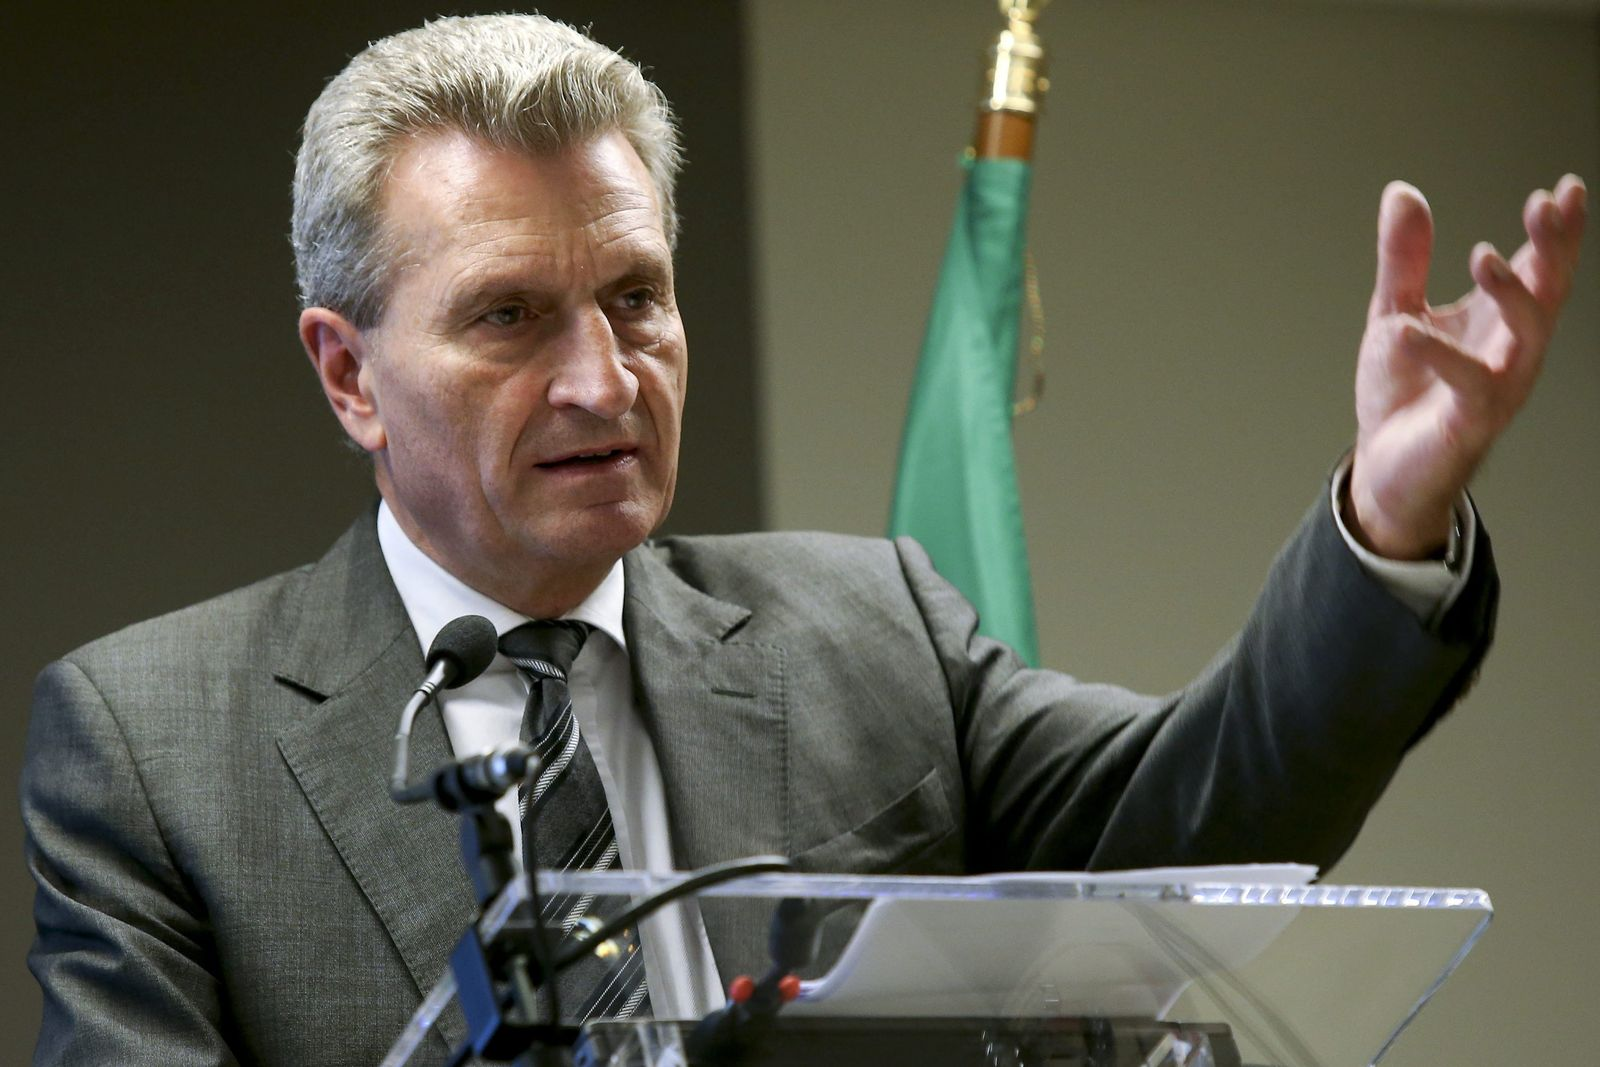 EU Commissioner Guenther Oettinger in Lisbon